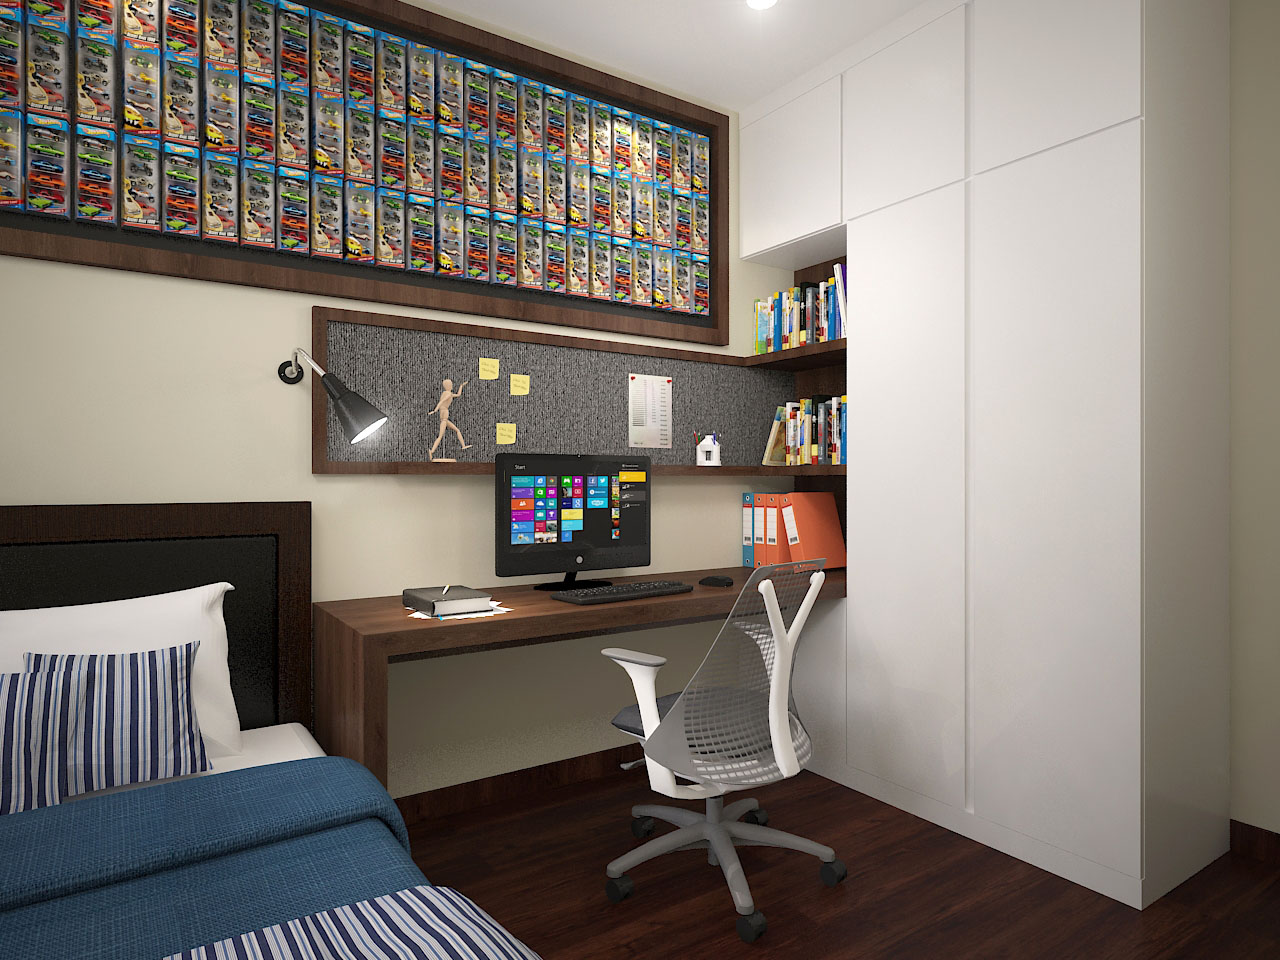 Ivonne-Boys-Bedroom-Study-Room.jpg